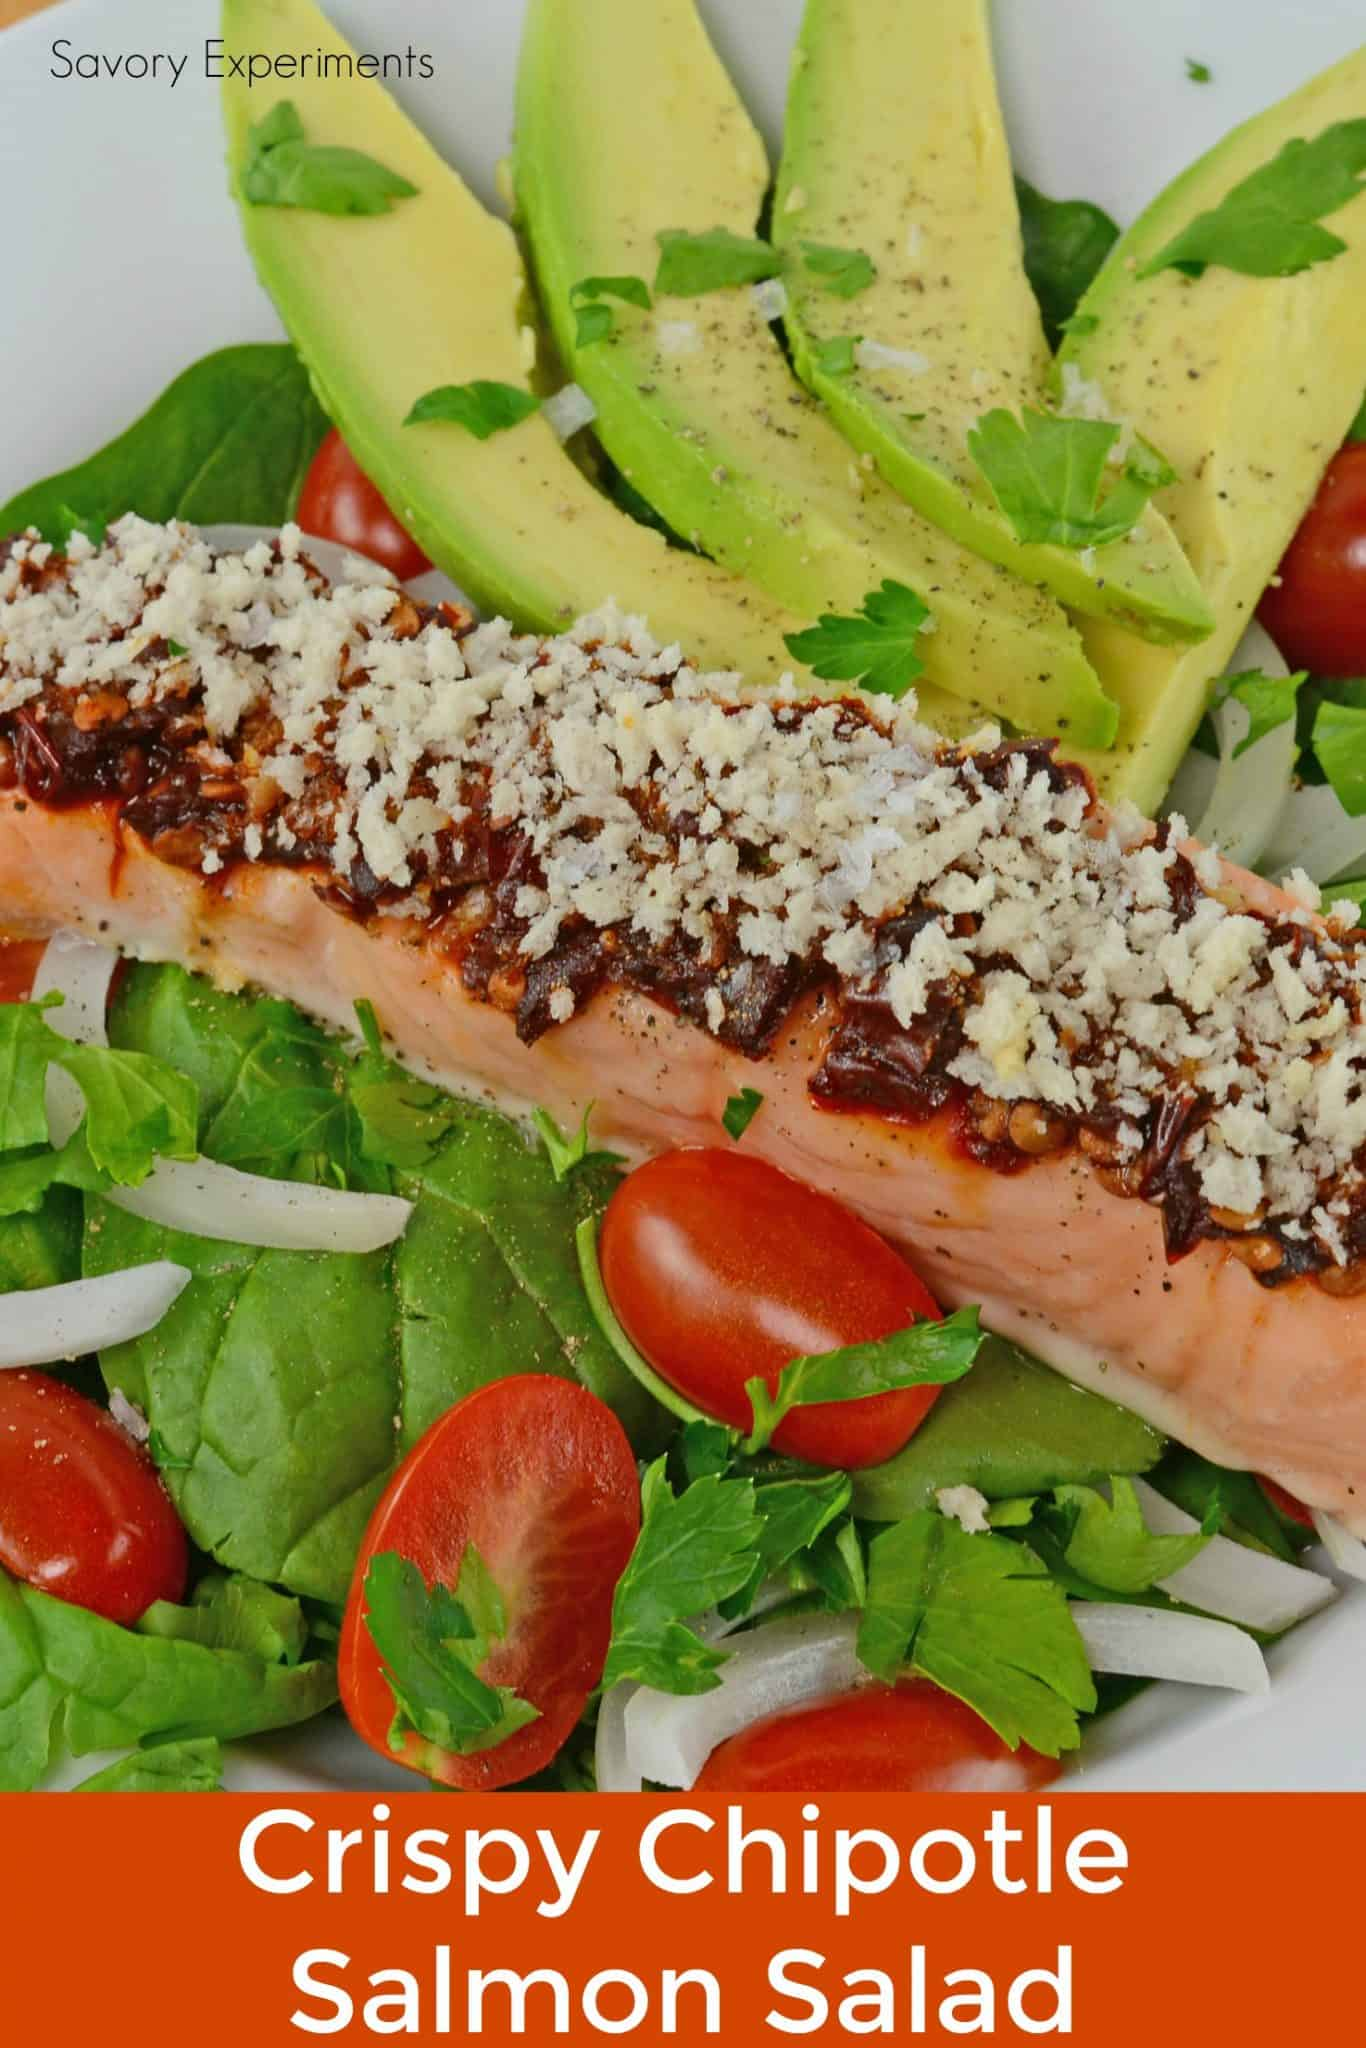 Crispy Chipotle Salmon Salad is a simple and healthy salad filled with fun texture and spicy flavor!